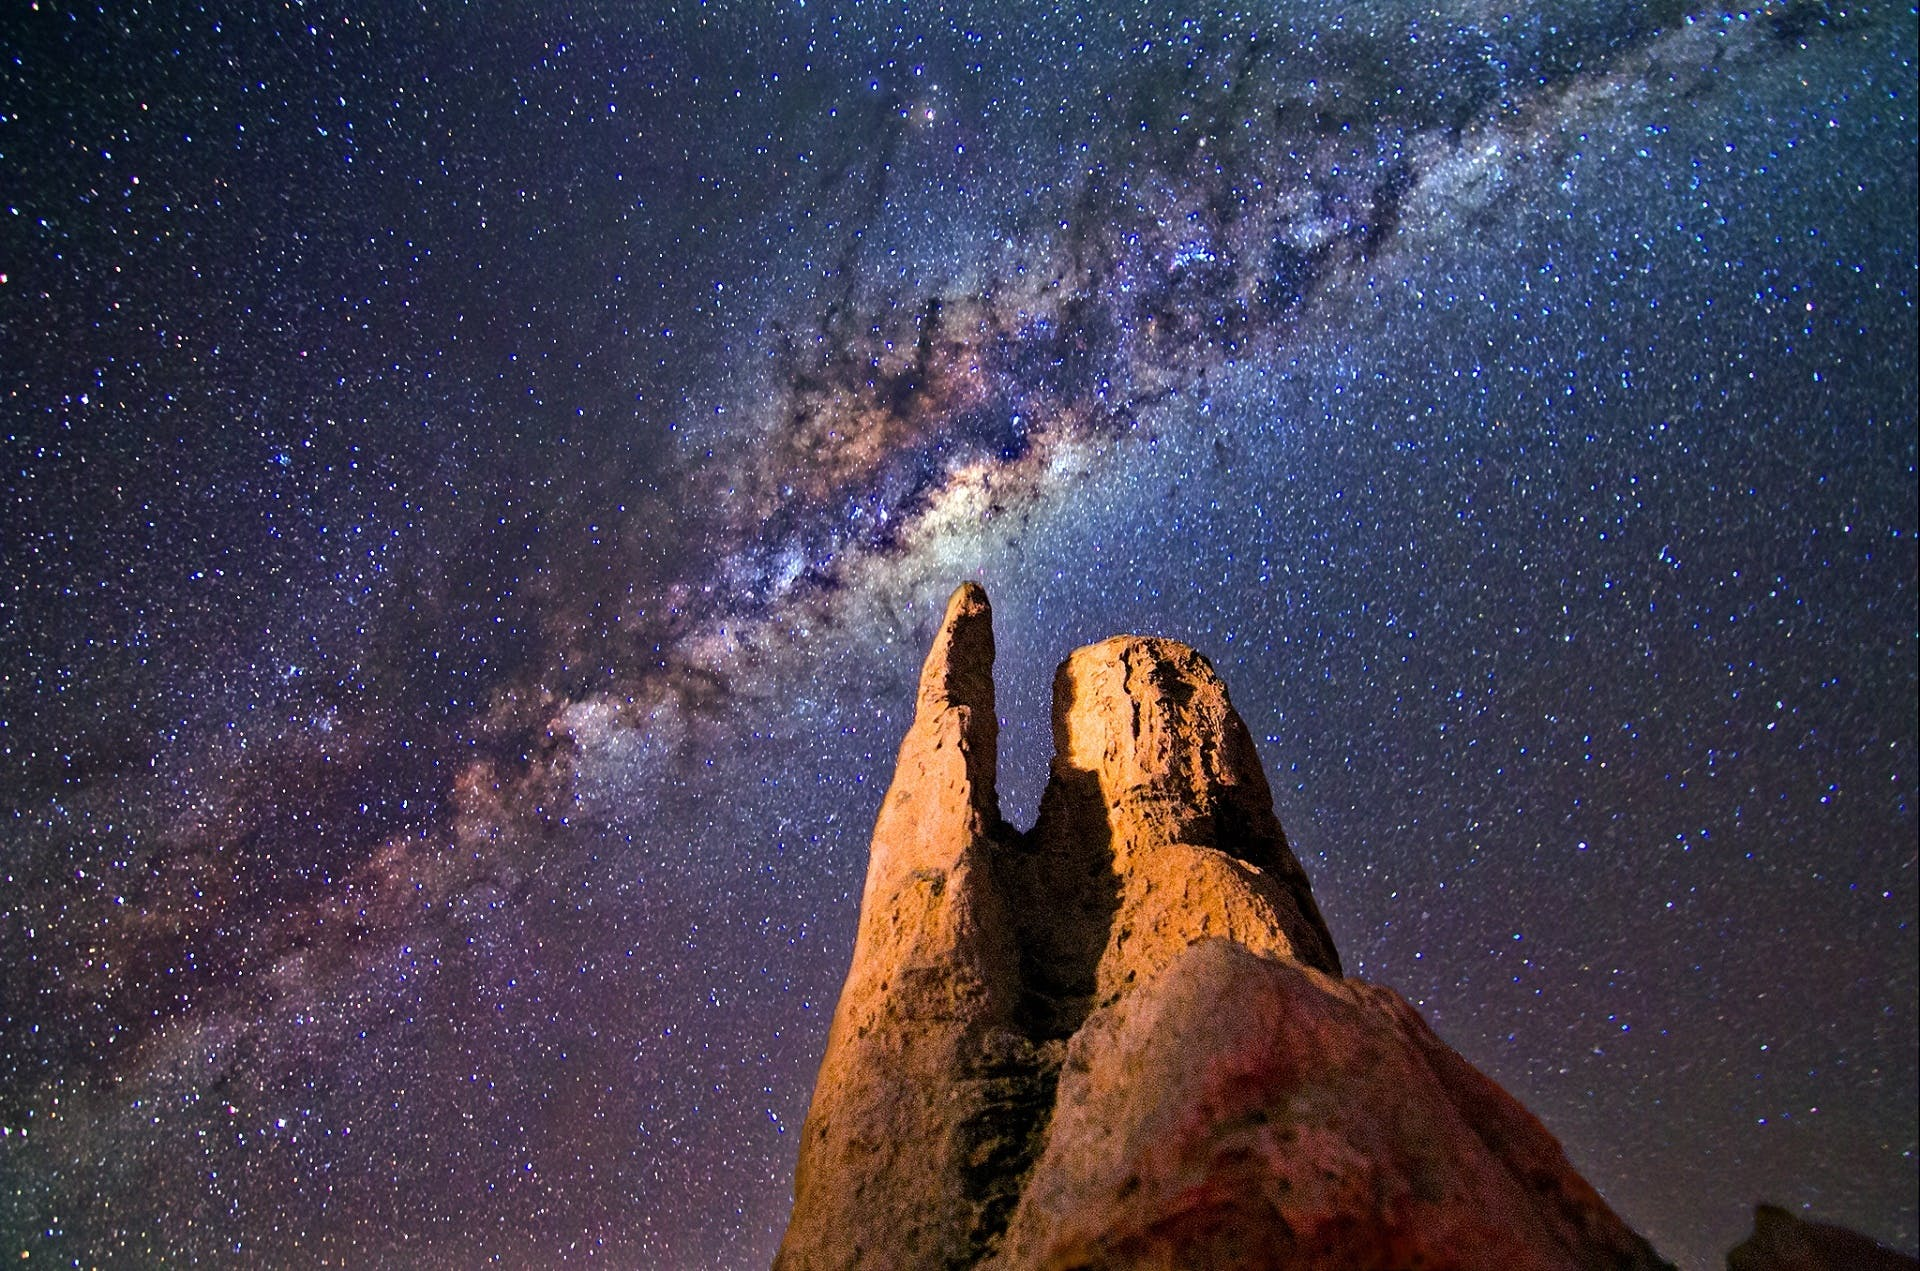 Rock Formation during Night Time